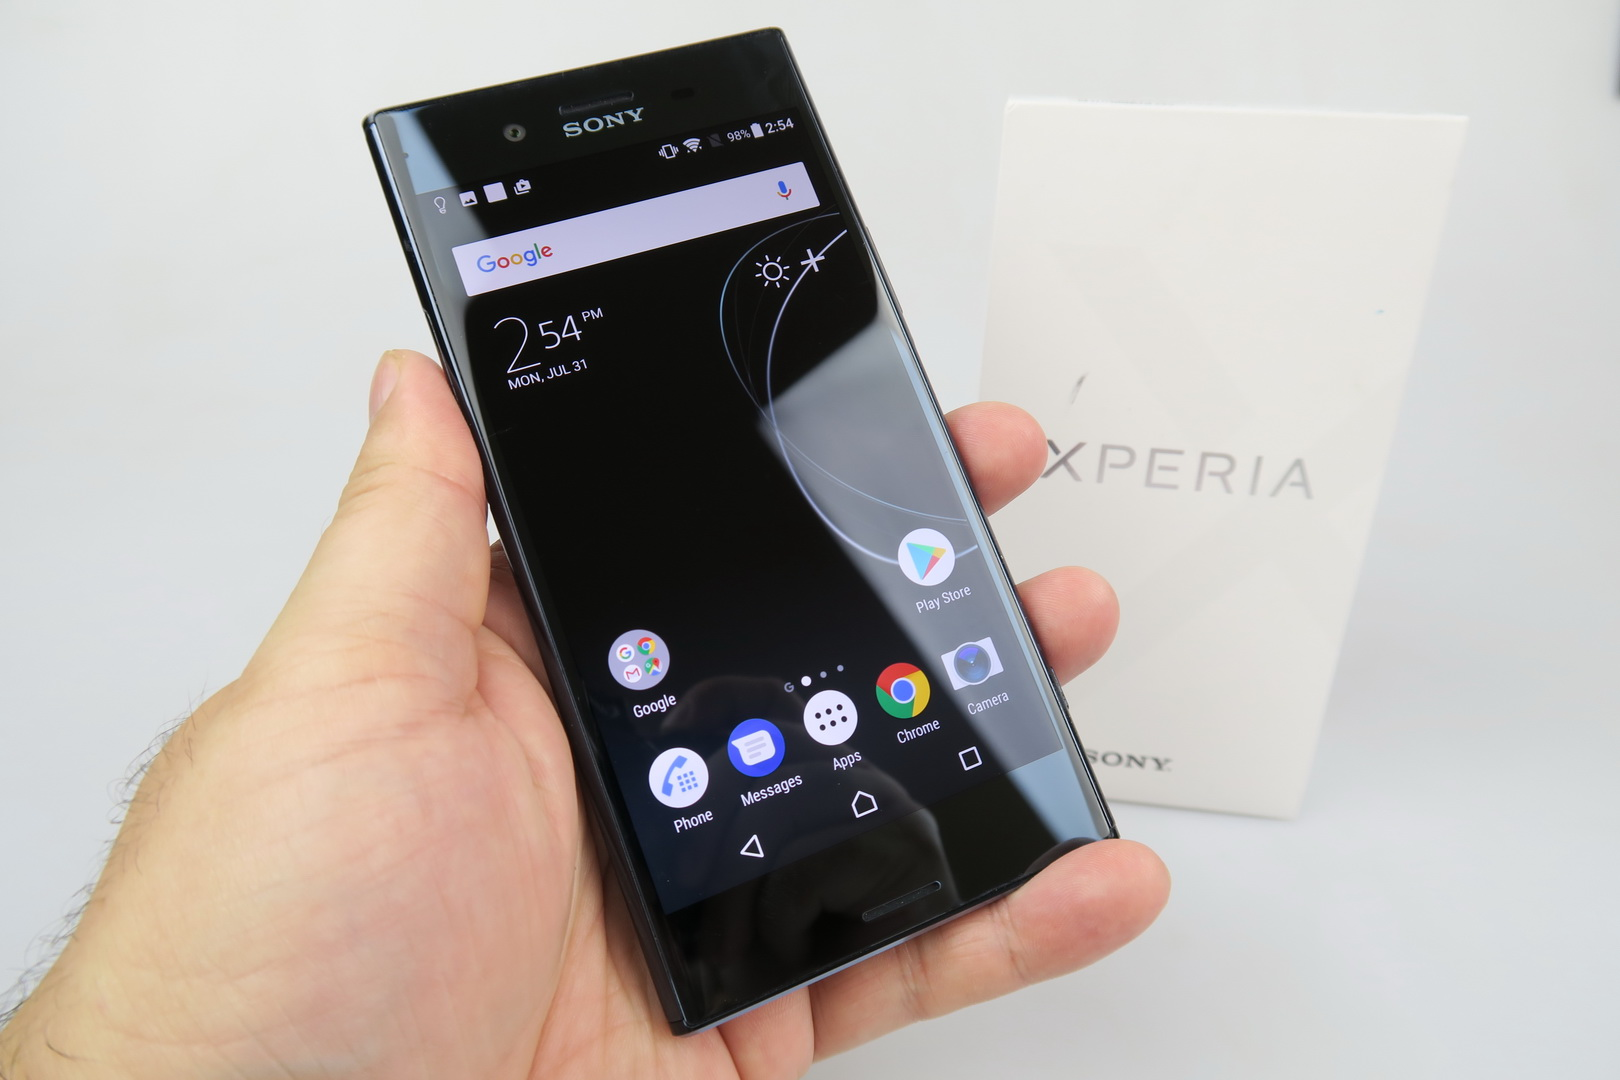 Sony Xperia Xperia Xz Premium Unboxing 4k Hdr Waterproof Machine Goes Slow Motion In Incredible Fashion Video Gsmdome Com